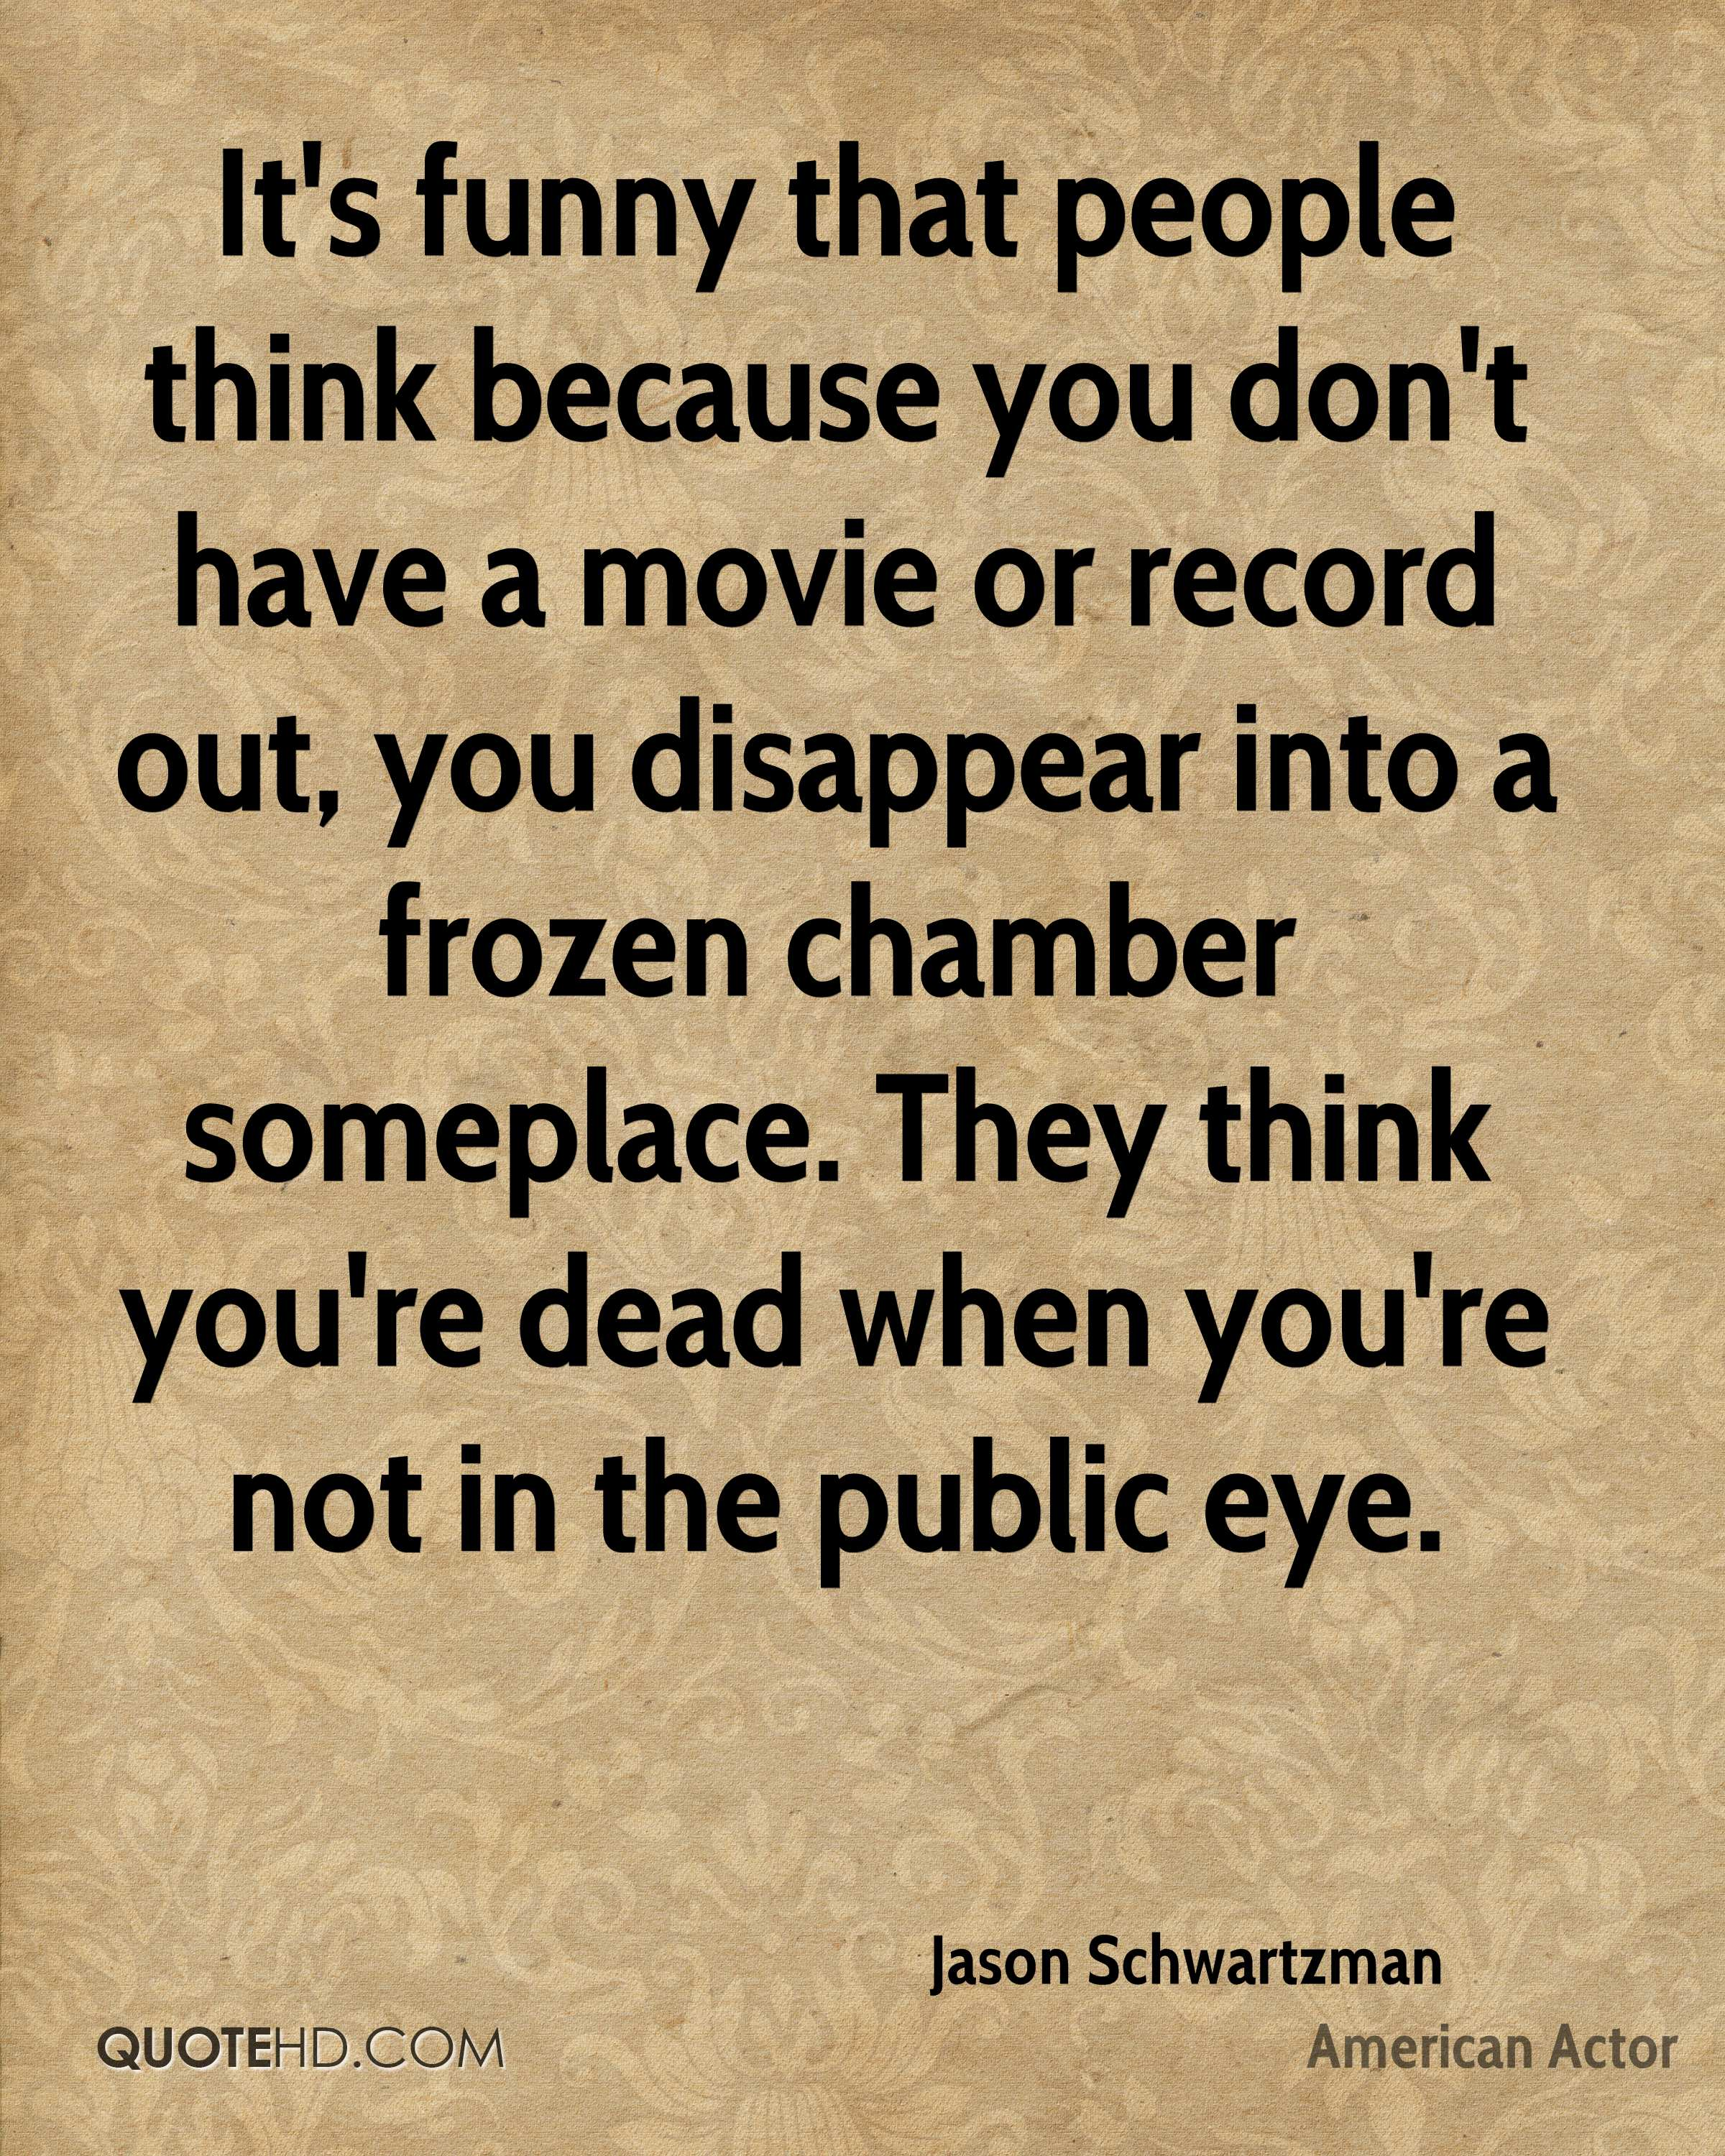 It's funny that people think because you don't have a movie or record out, you disappear into a frozen chamber someplace. They think you're dead when you're not in the public eye.